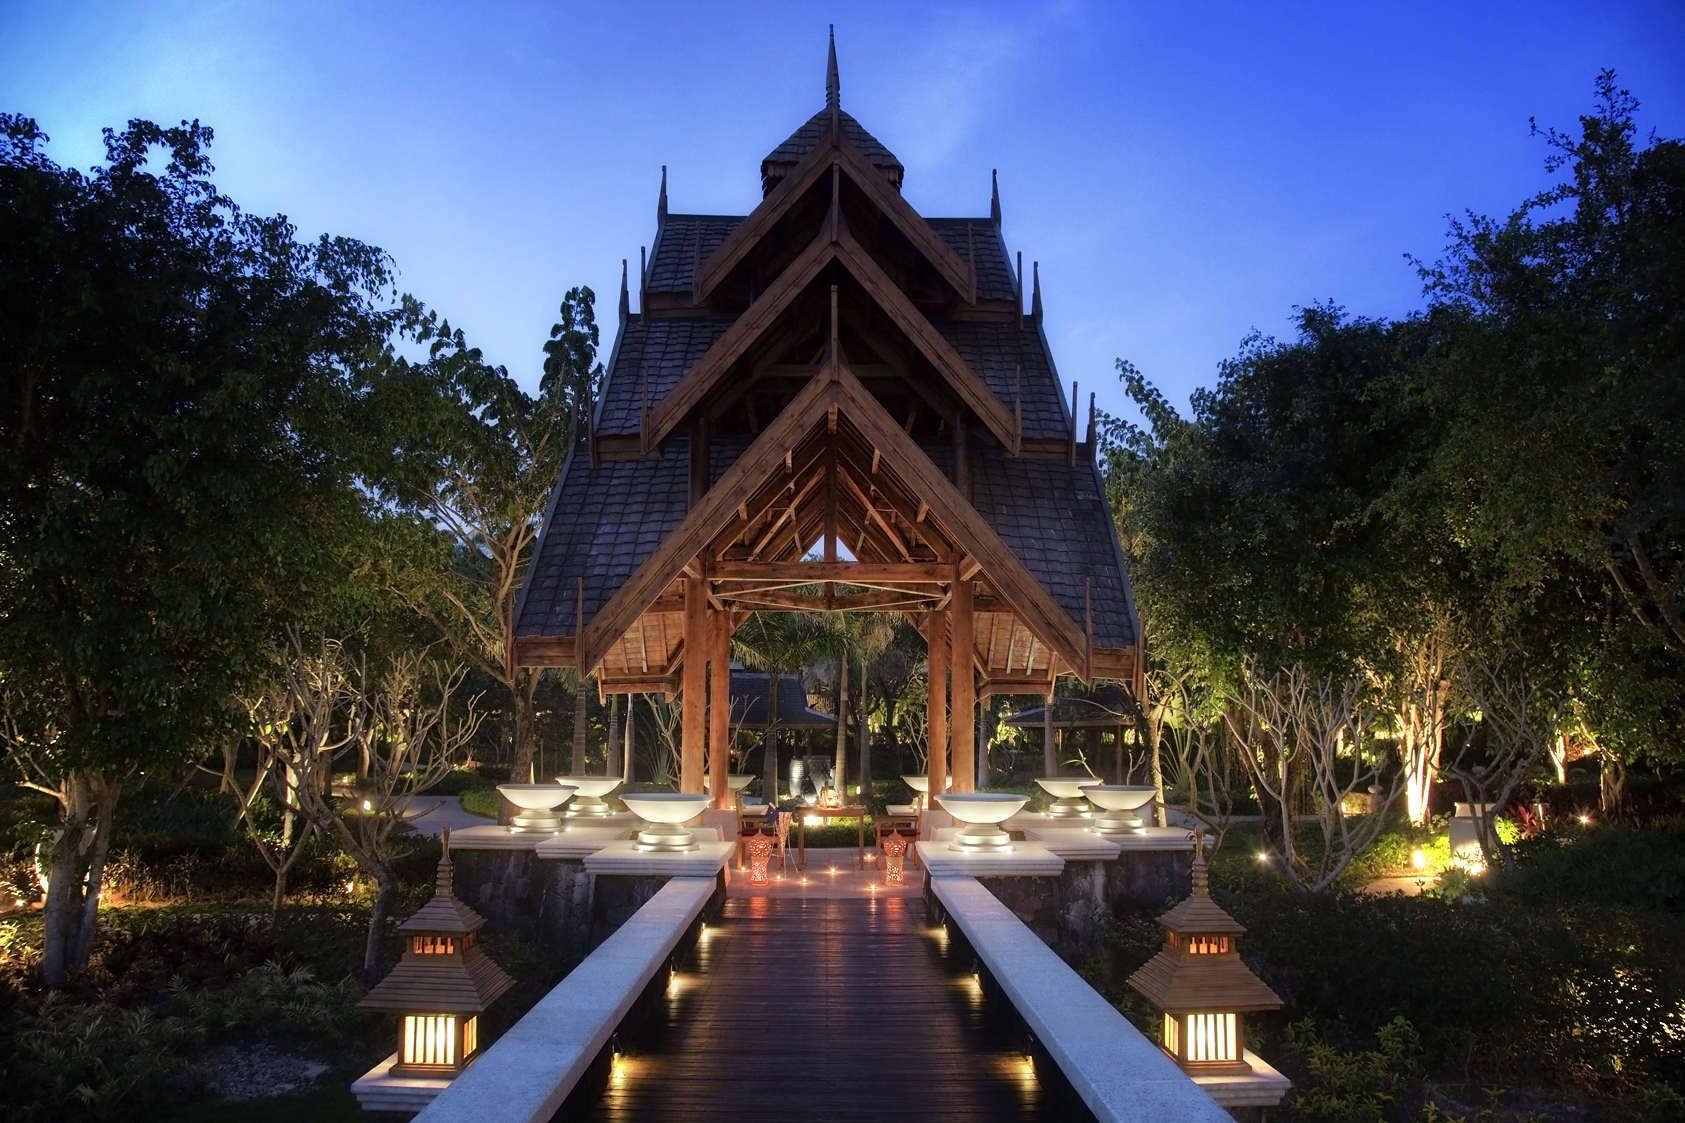 Xishuangbanna China  city photo : ... Opens a New Resort in China: Anantara Xishuangbanna | ECO ADVENTURER